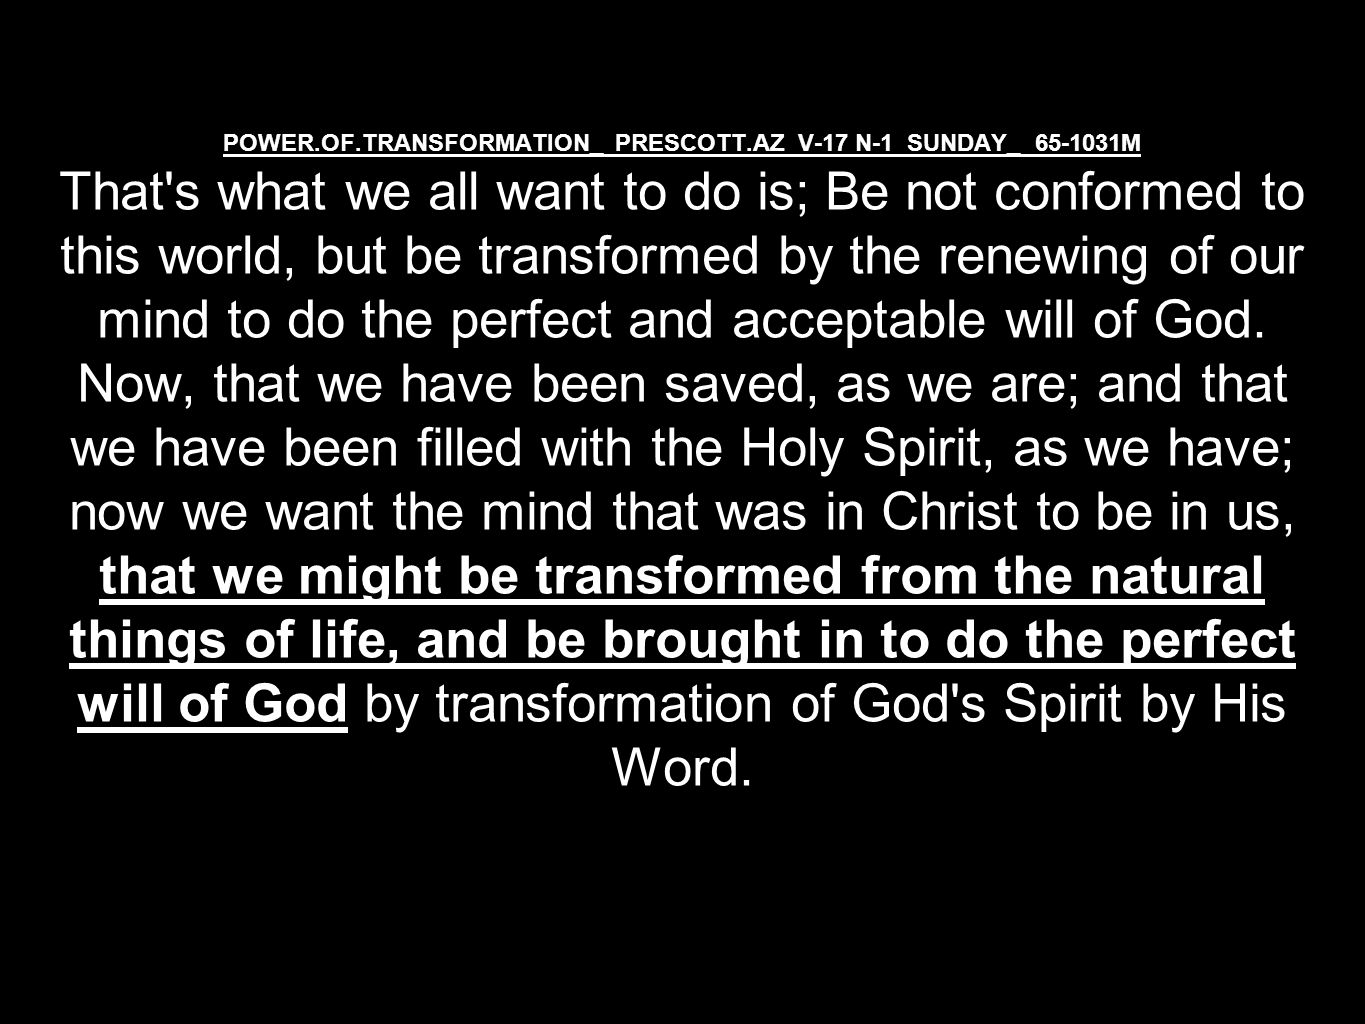 POWER.OF.TRANSFORMATION_ PRESCOTT.AZ V-17 N-1 SUNDAY_ 65-1031M That s what we all want to do is; Be not conformed to this world, but be transformed by the renewing of our mind to do the perfect and acceptable will of God.